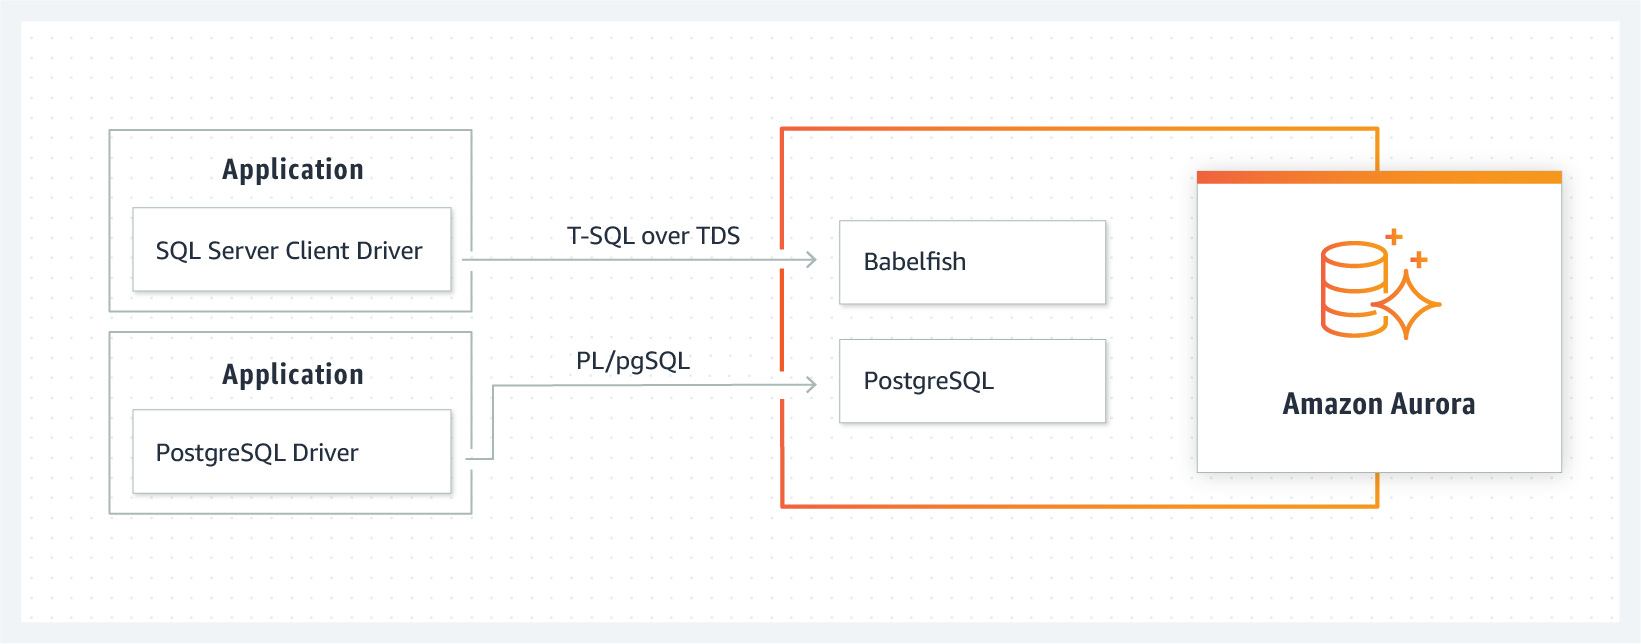 HIW-Diagram_Babelfish-for-PostgreSQL@2x(V2)_product-page-diagram_CN-Babel_rev